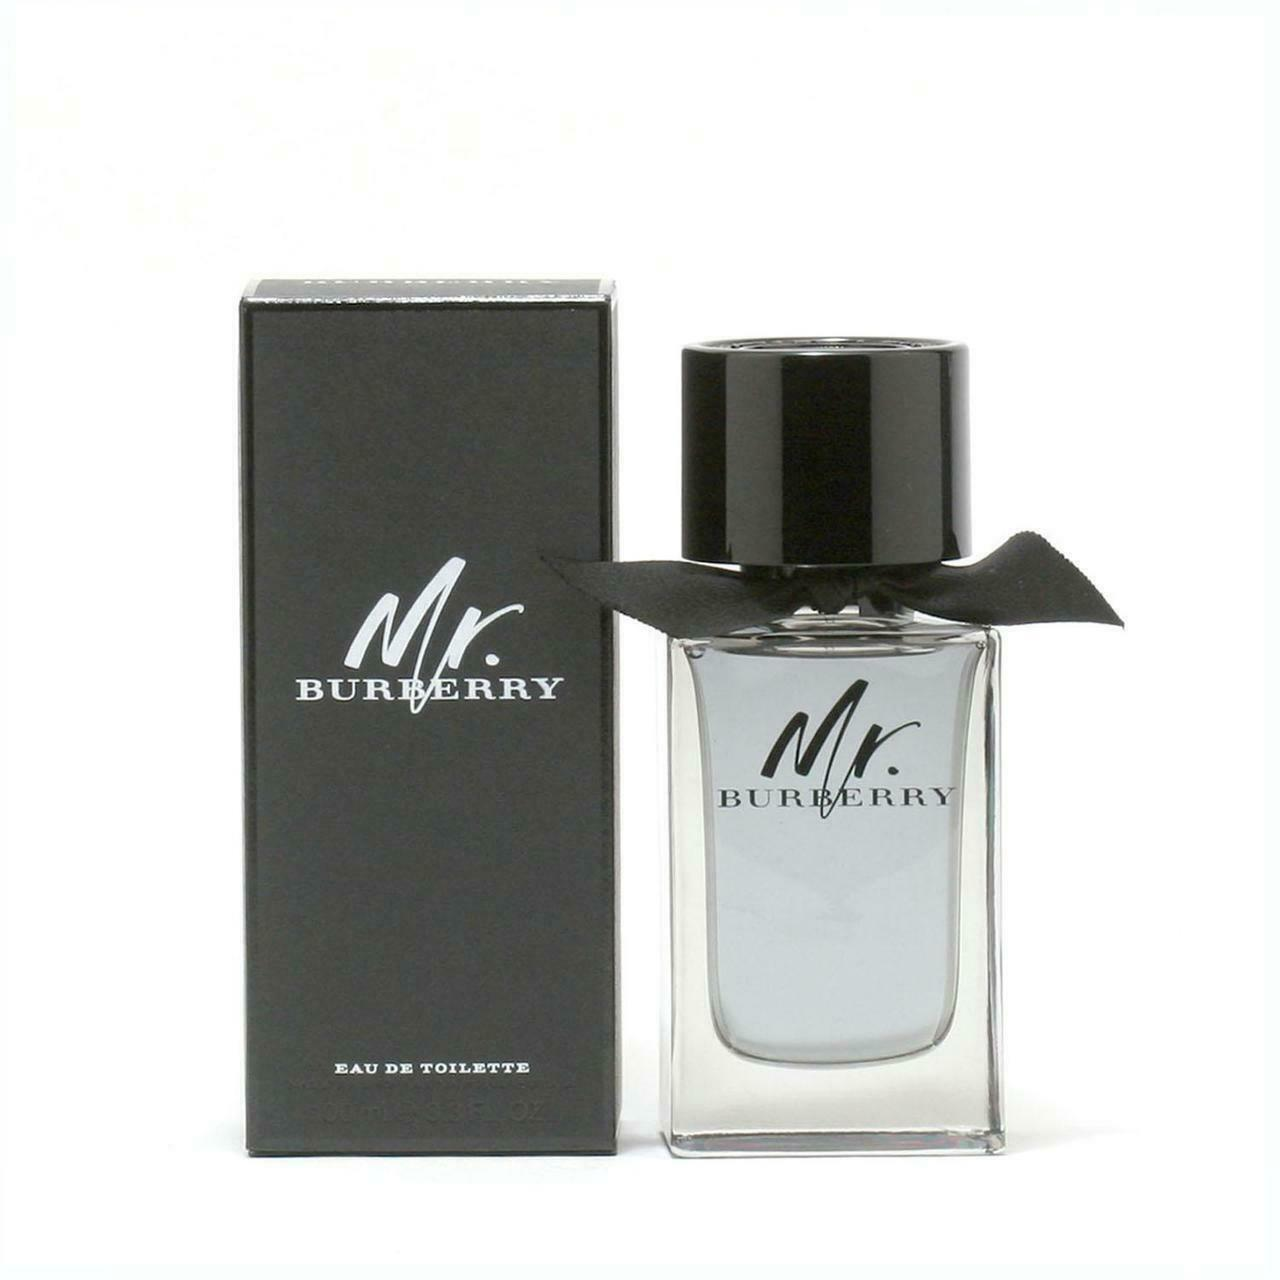 Primary image for Burberry Mr. Burberry Edt Spray 3.3 OZ